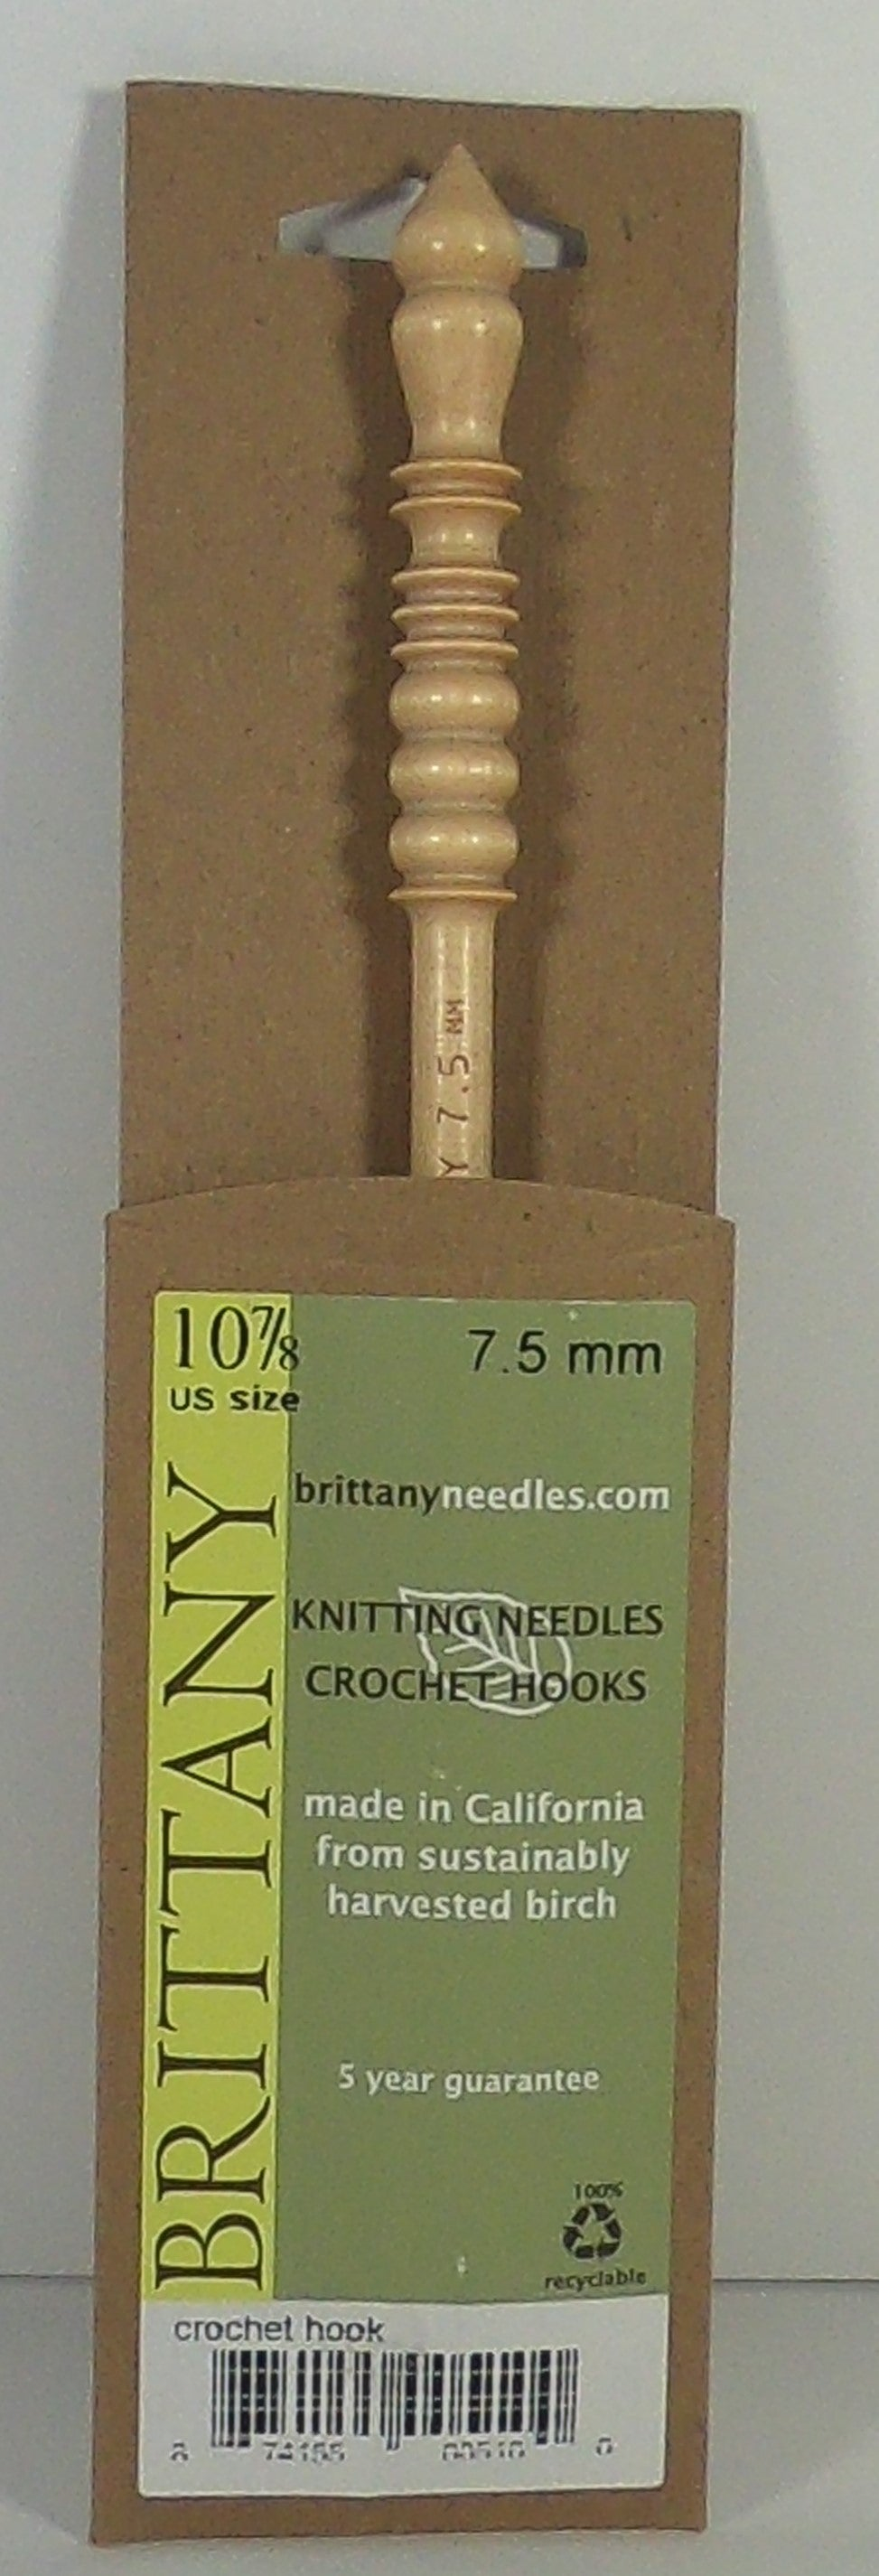 Crochet Hook - Brittany - Size 10 7/8 (7.5 MM) - Indigo Chase Specialties